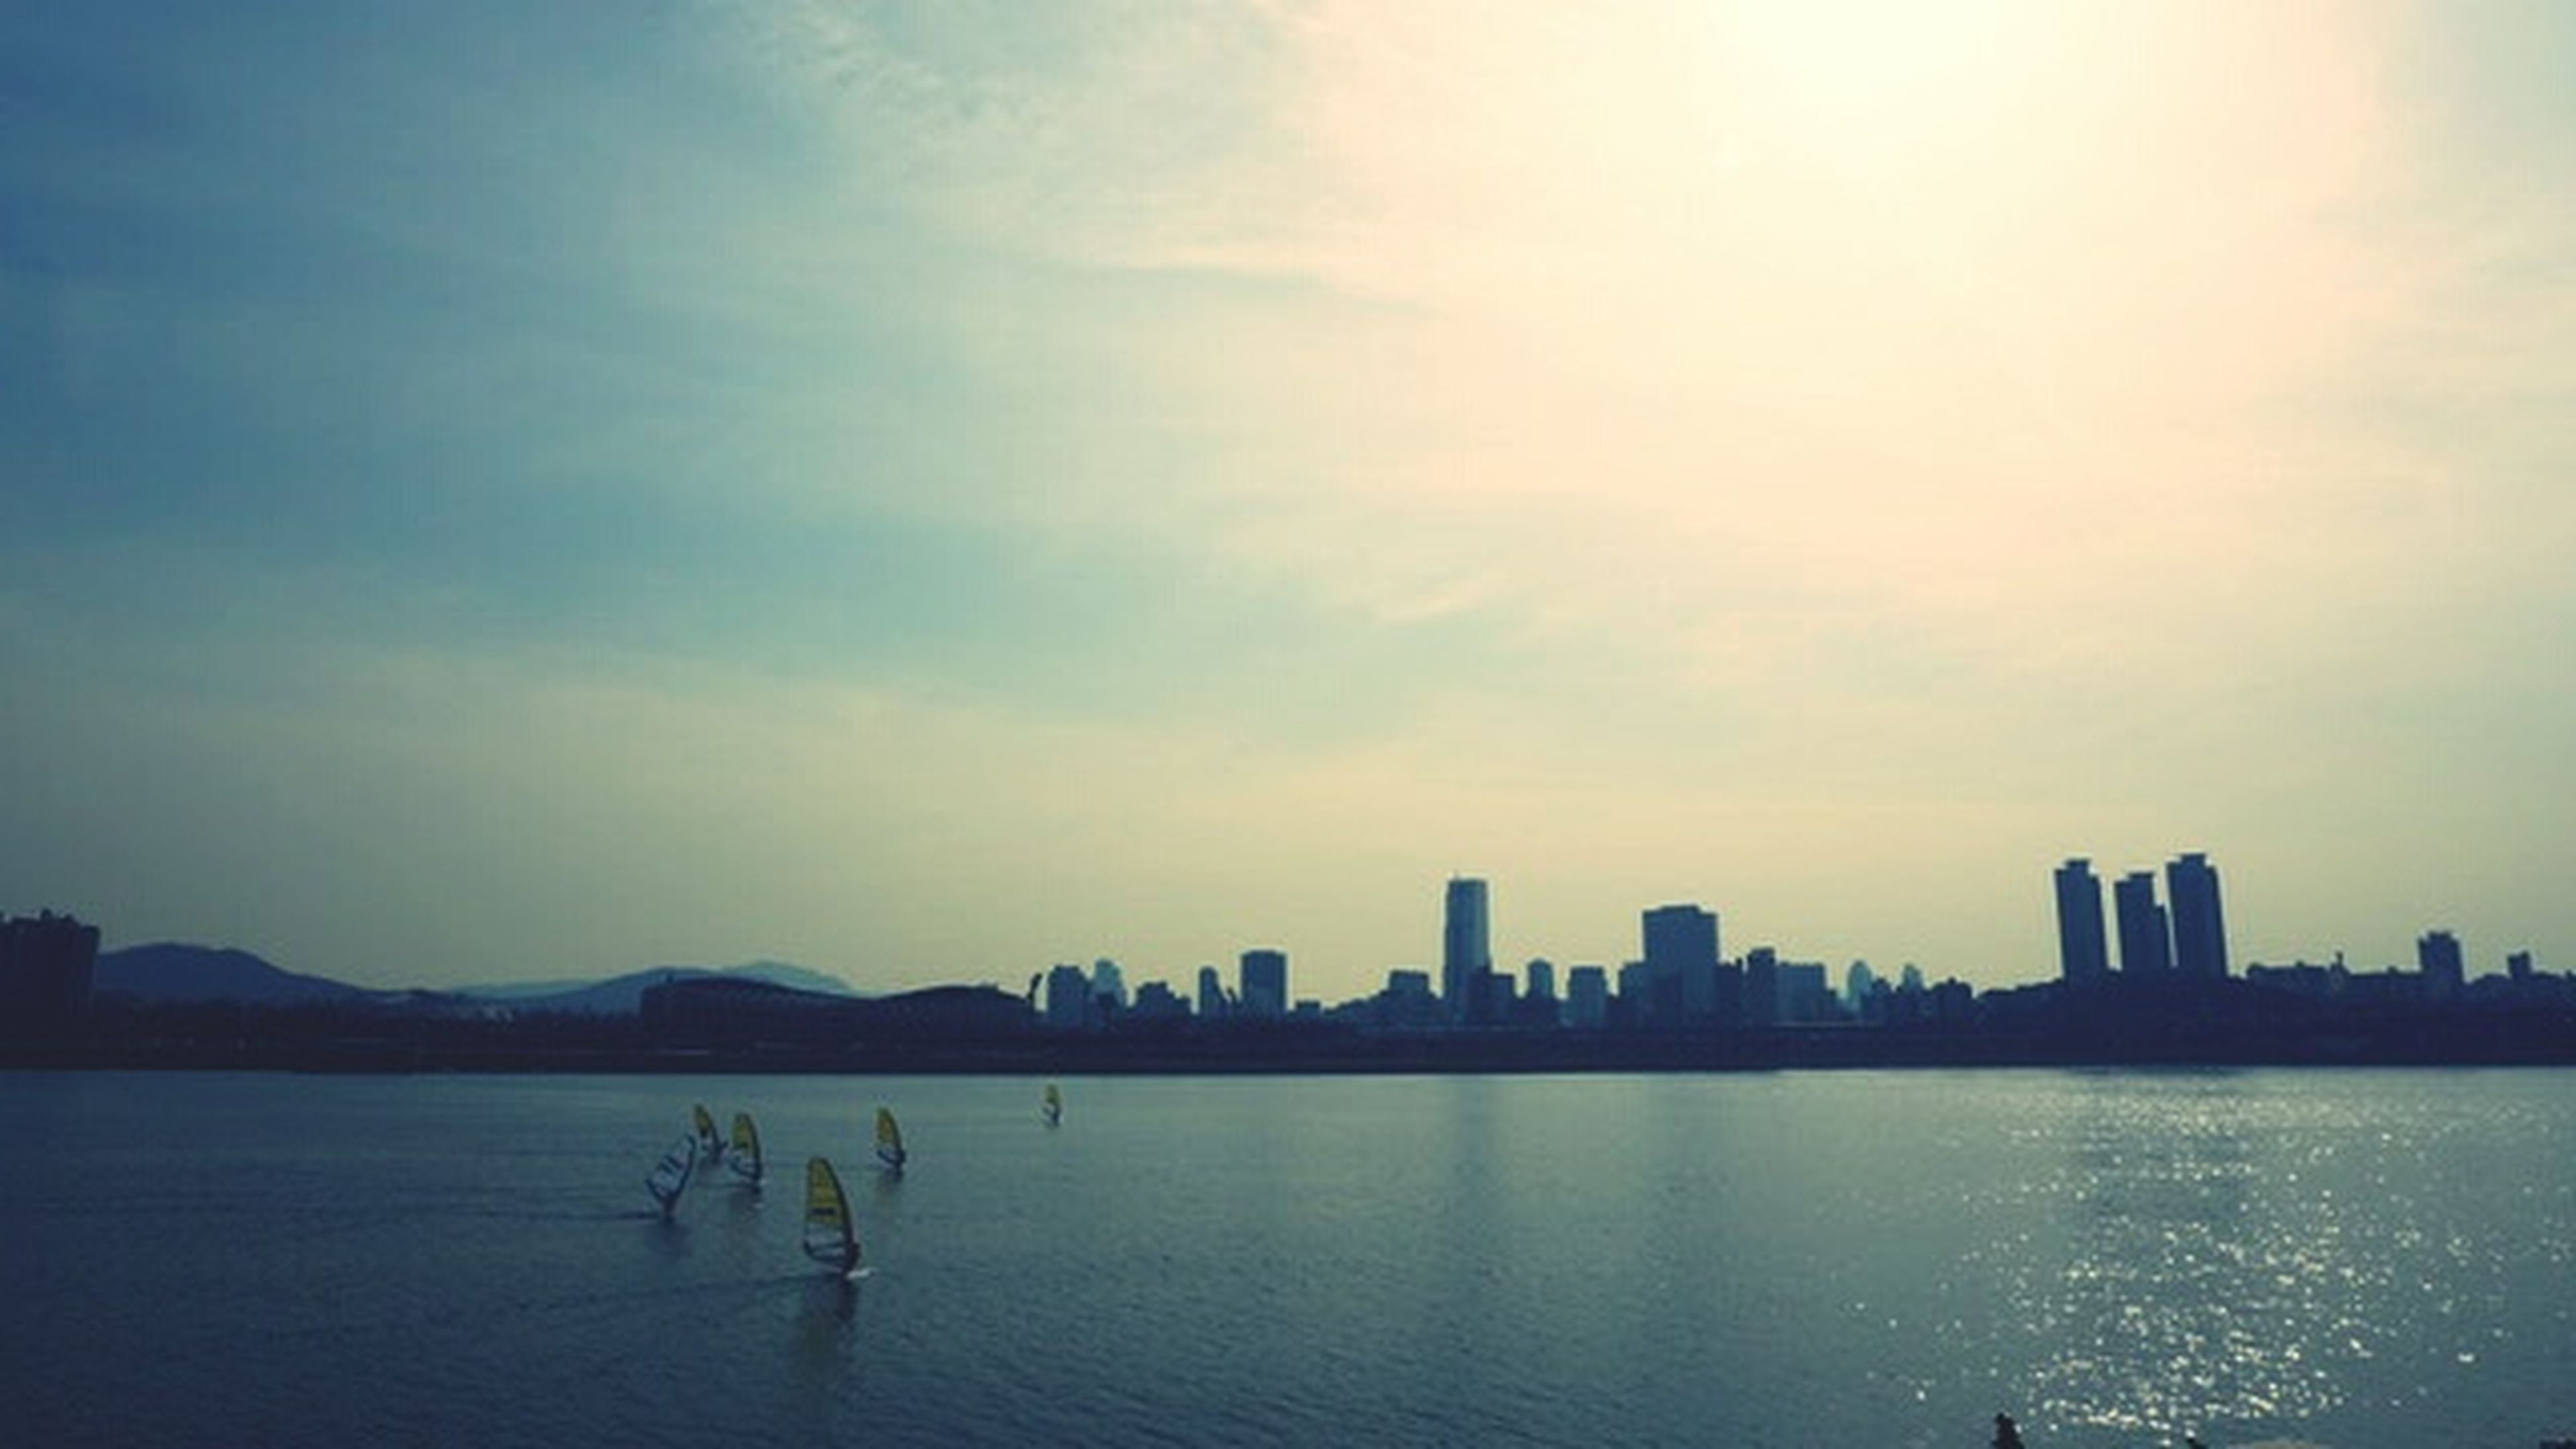 water, building exterior, silhouette, architecture, built structure, sky, city, sea, waterfront, sunset, cityscape, river, urban skyline, cloud - sky, city life, lifestyles, leisure activity, skyscraper, men